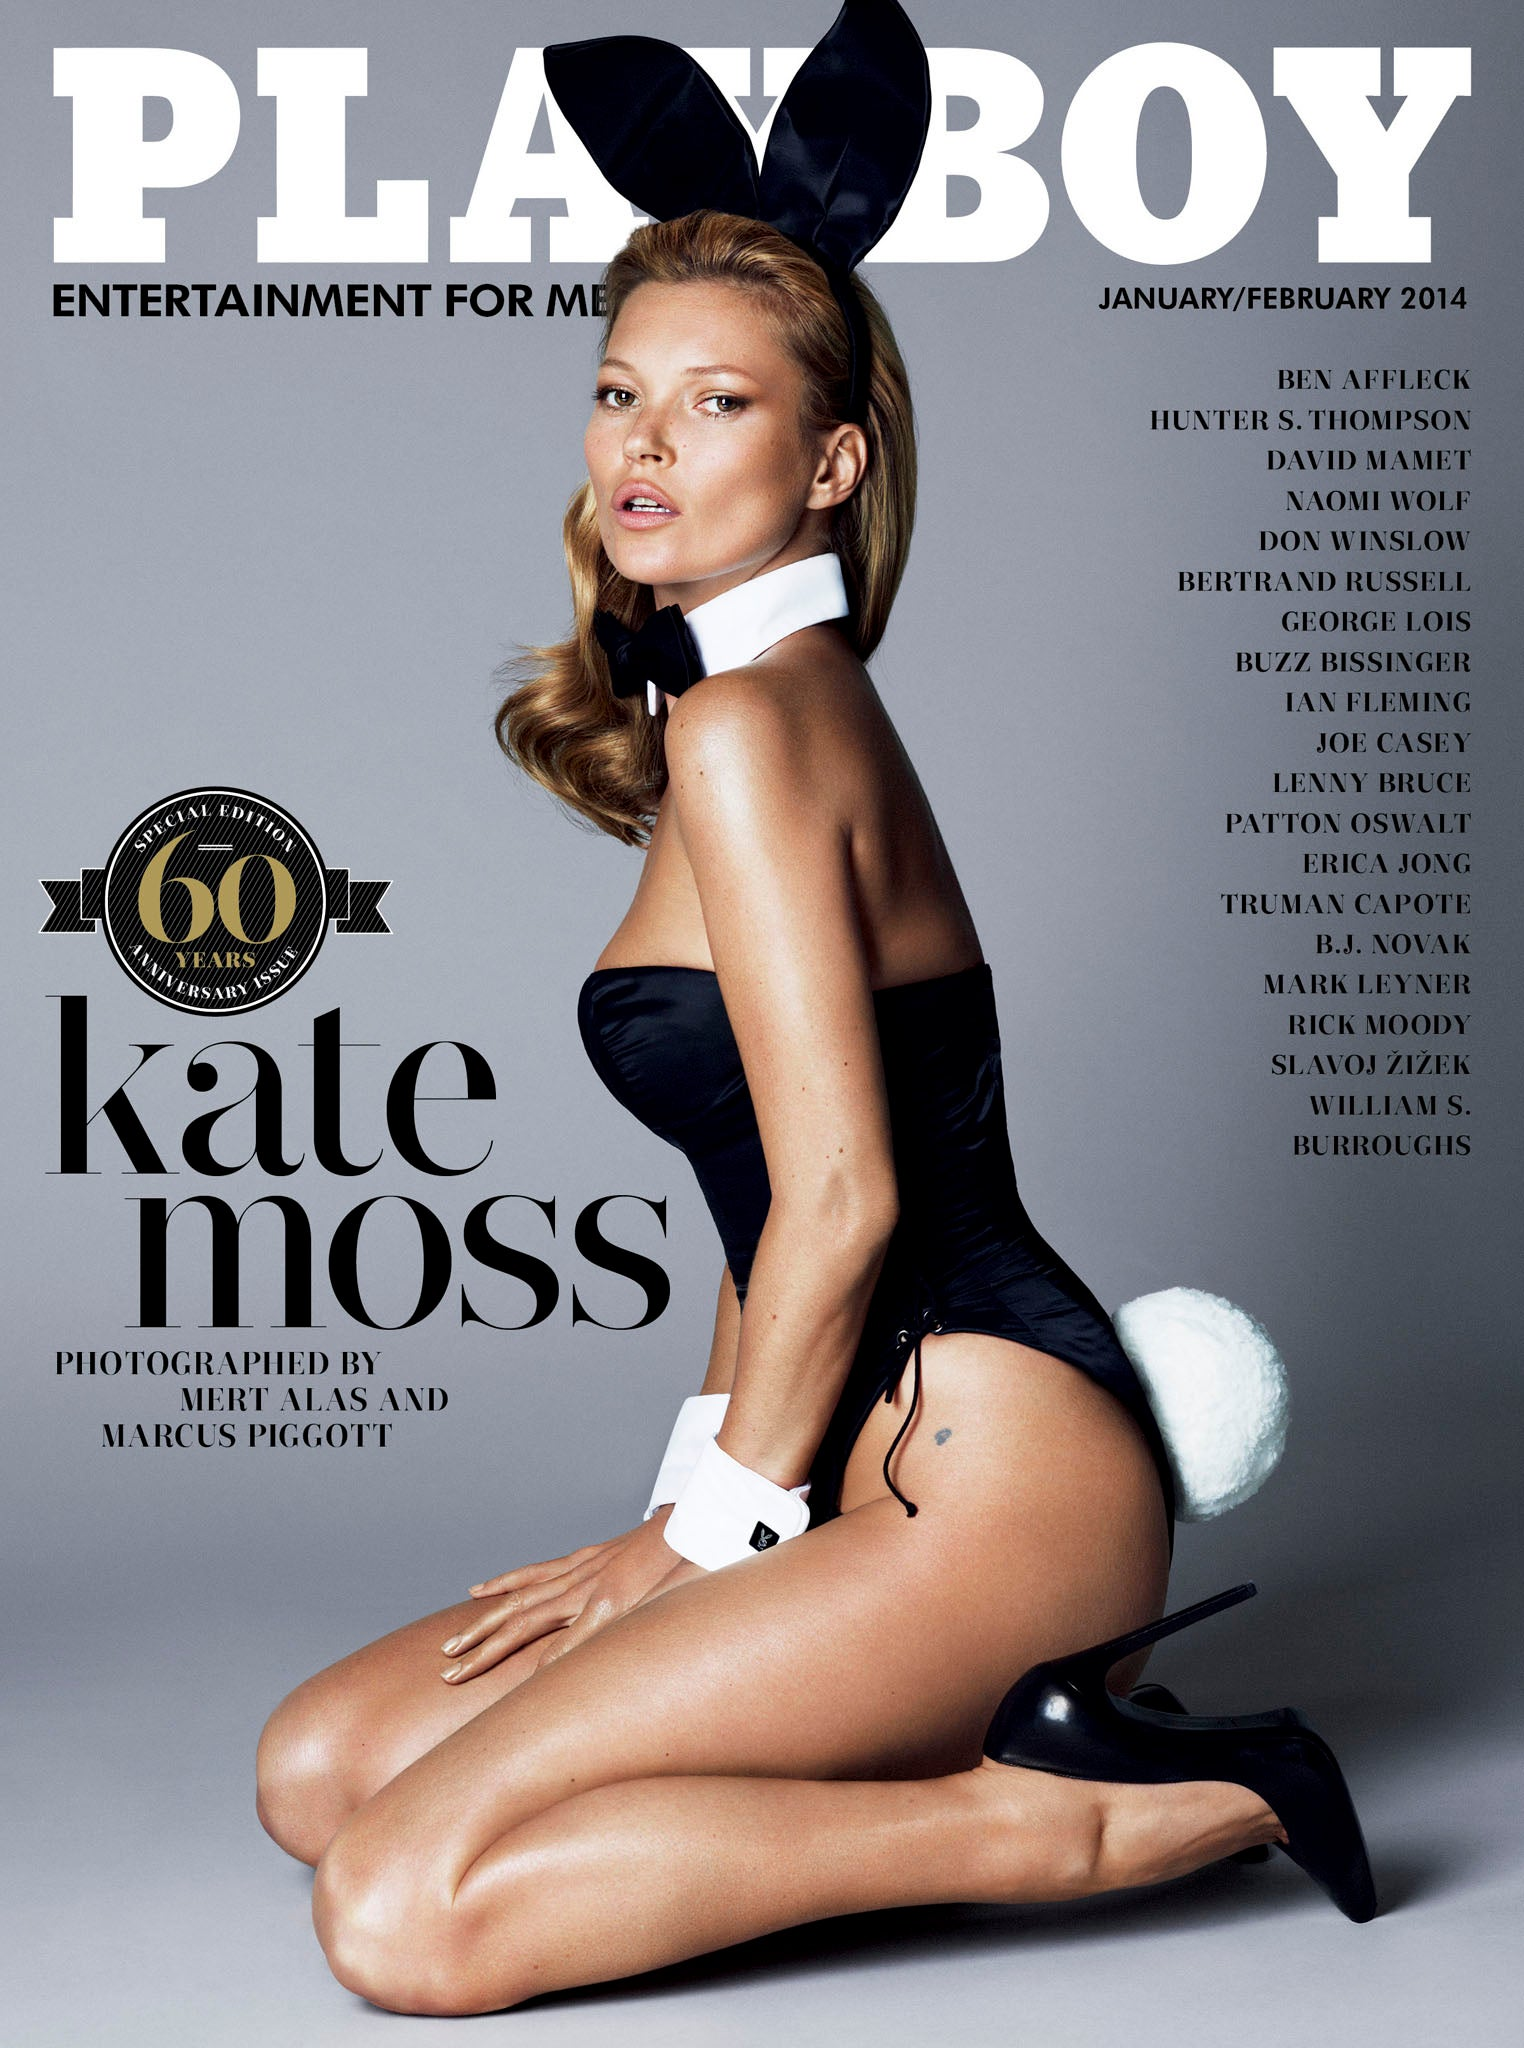 Kate Moss For Playboy: See The Cover We've All Been Waiting For